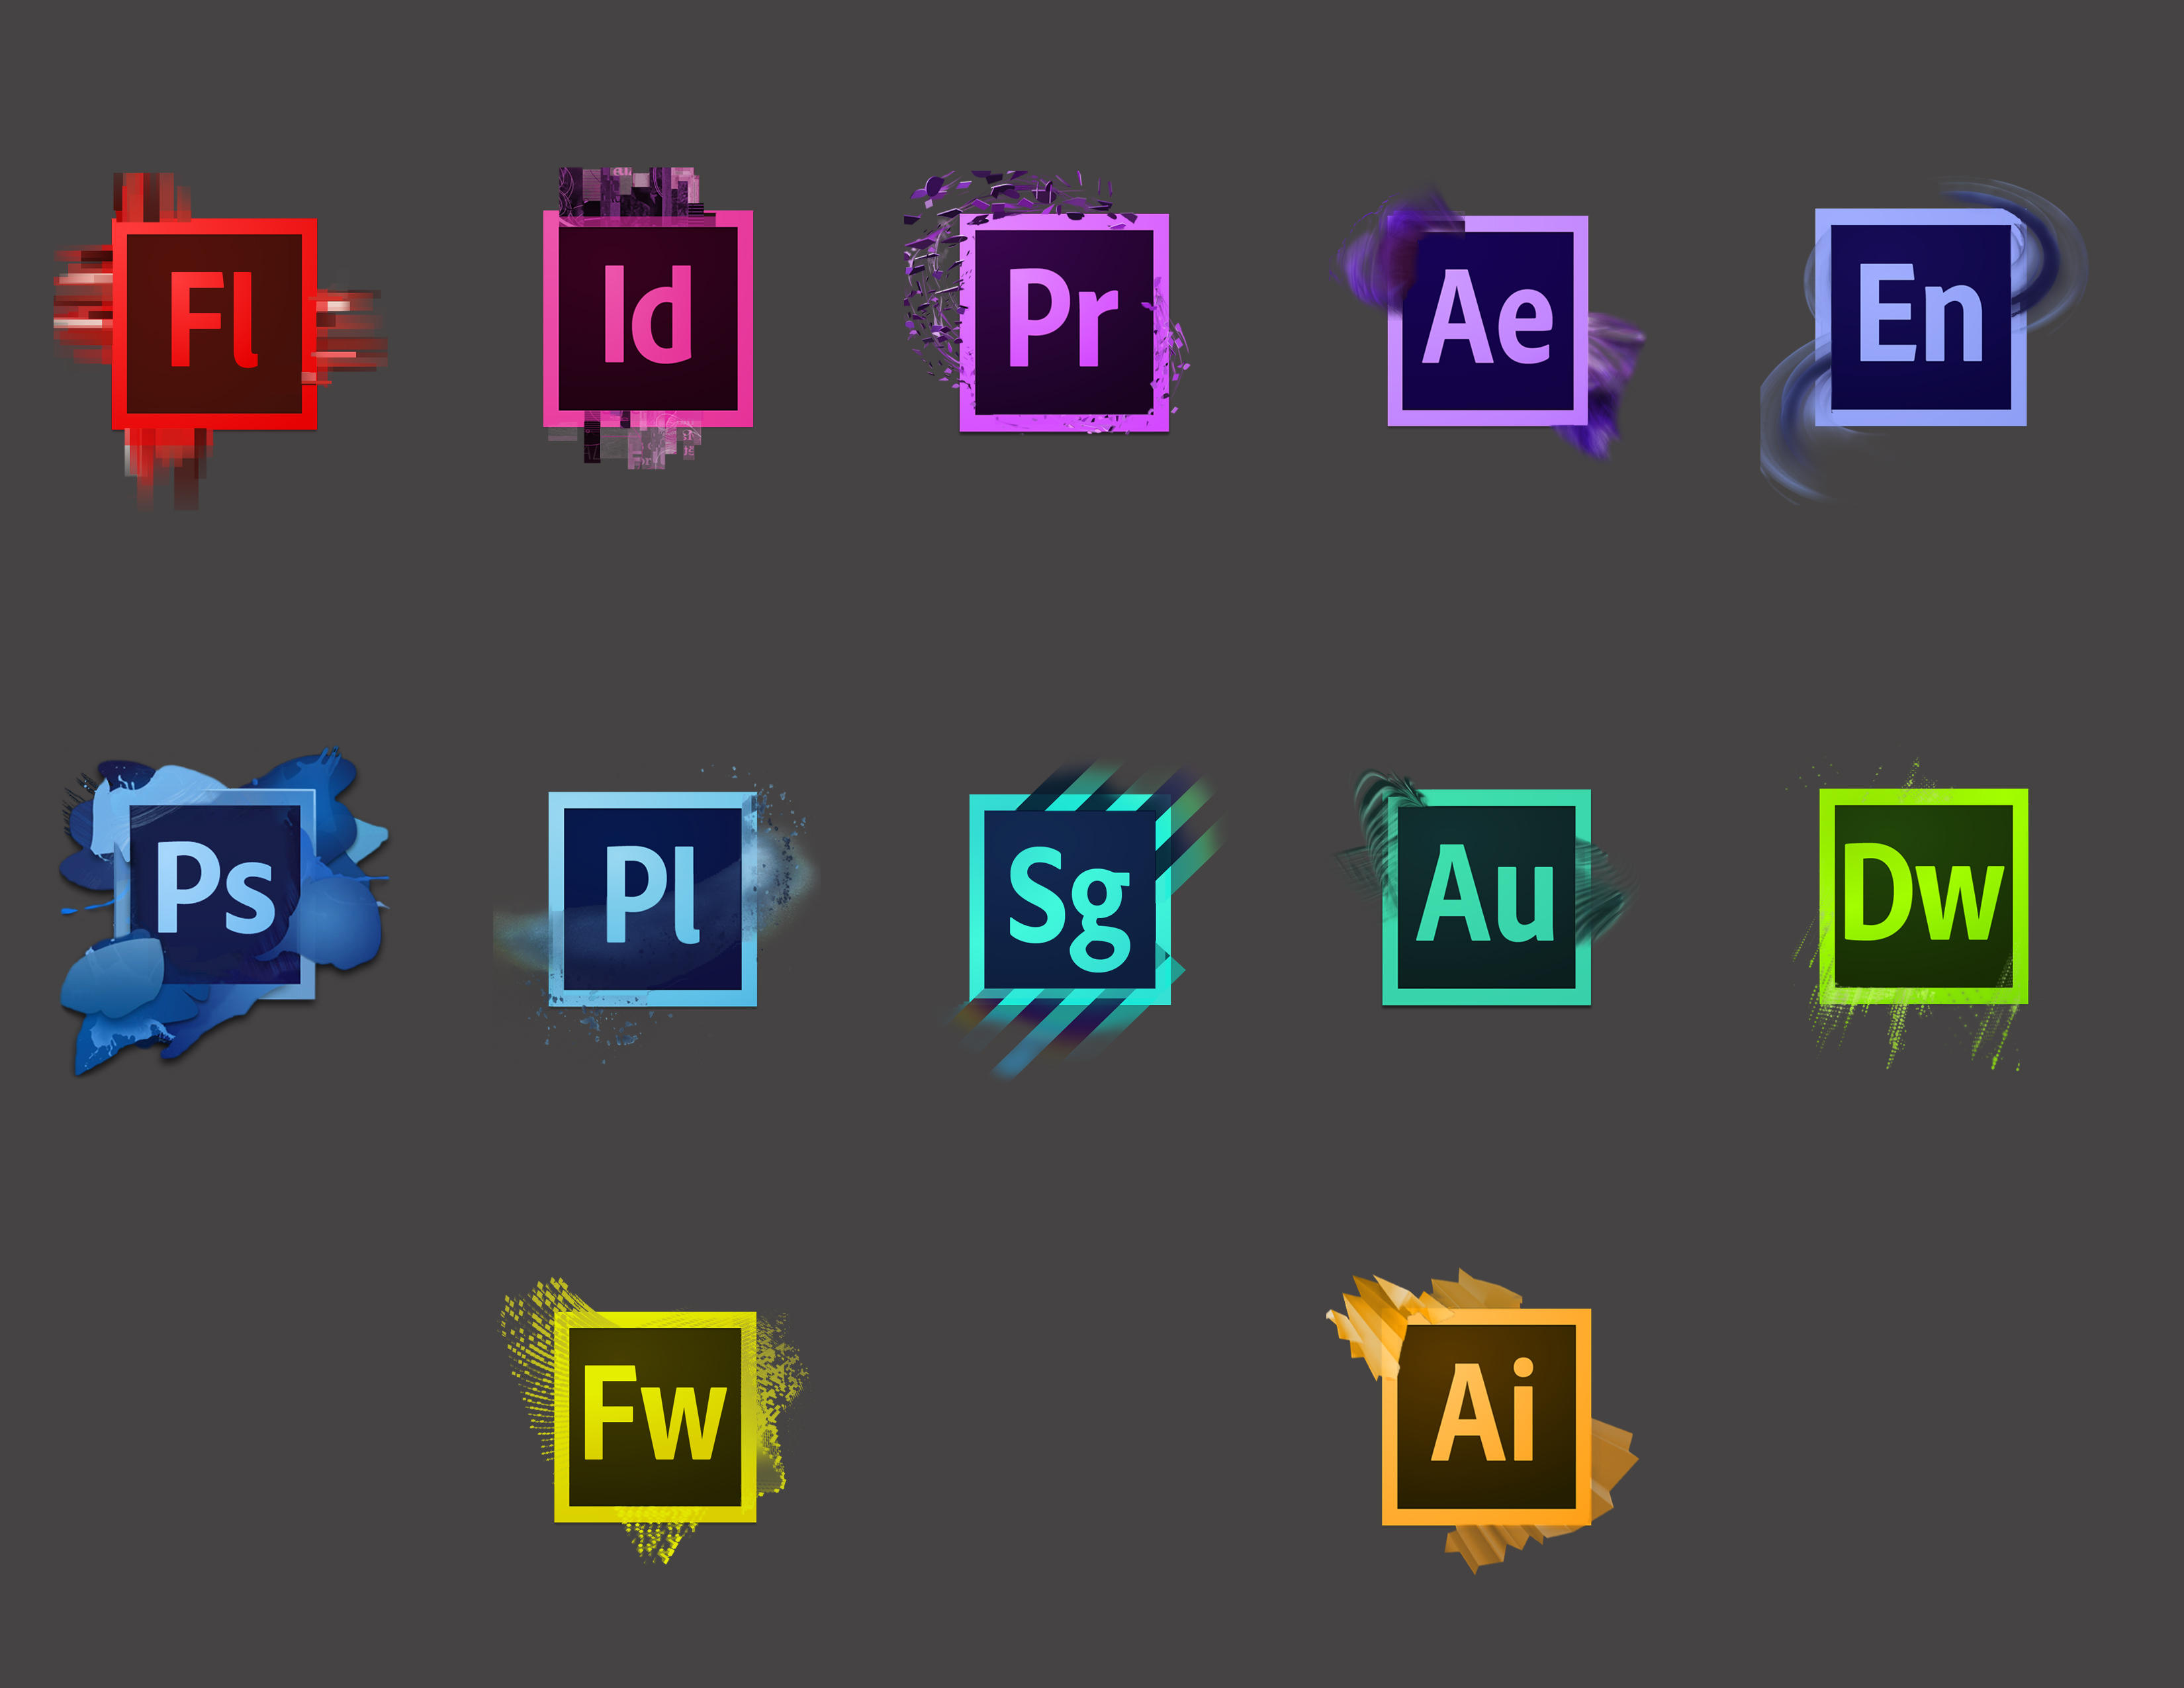 cs6 icons redesign by abrcrmbieguy87 on deviantart